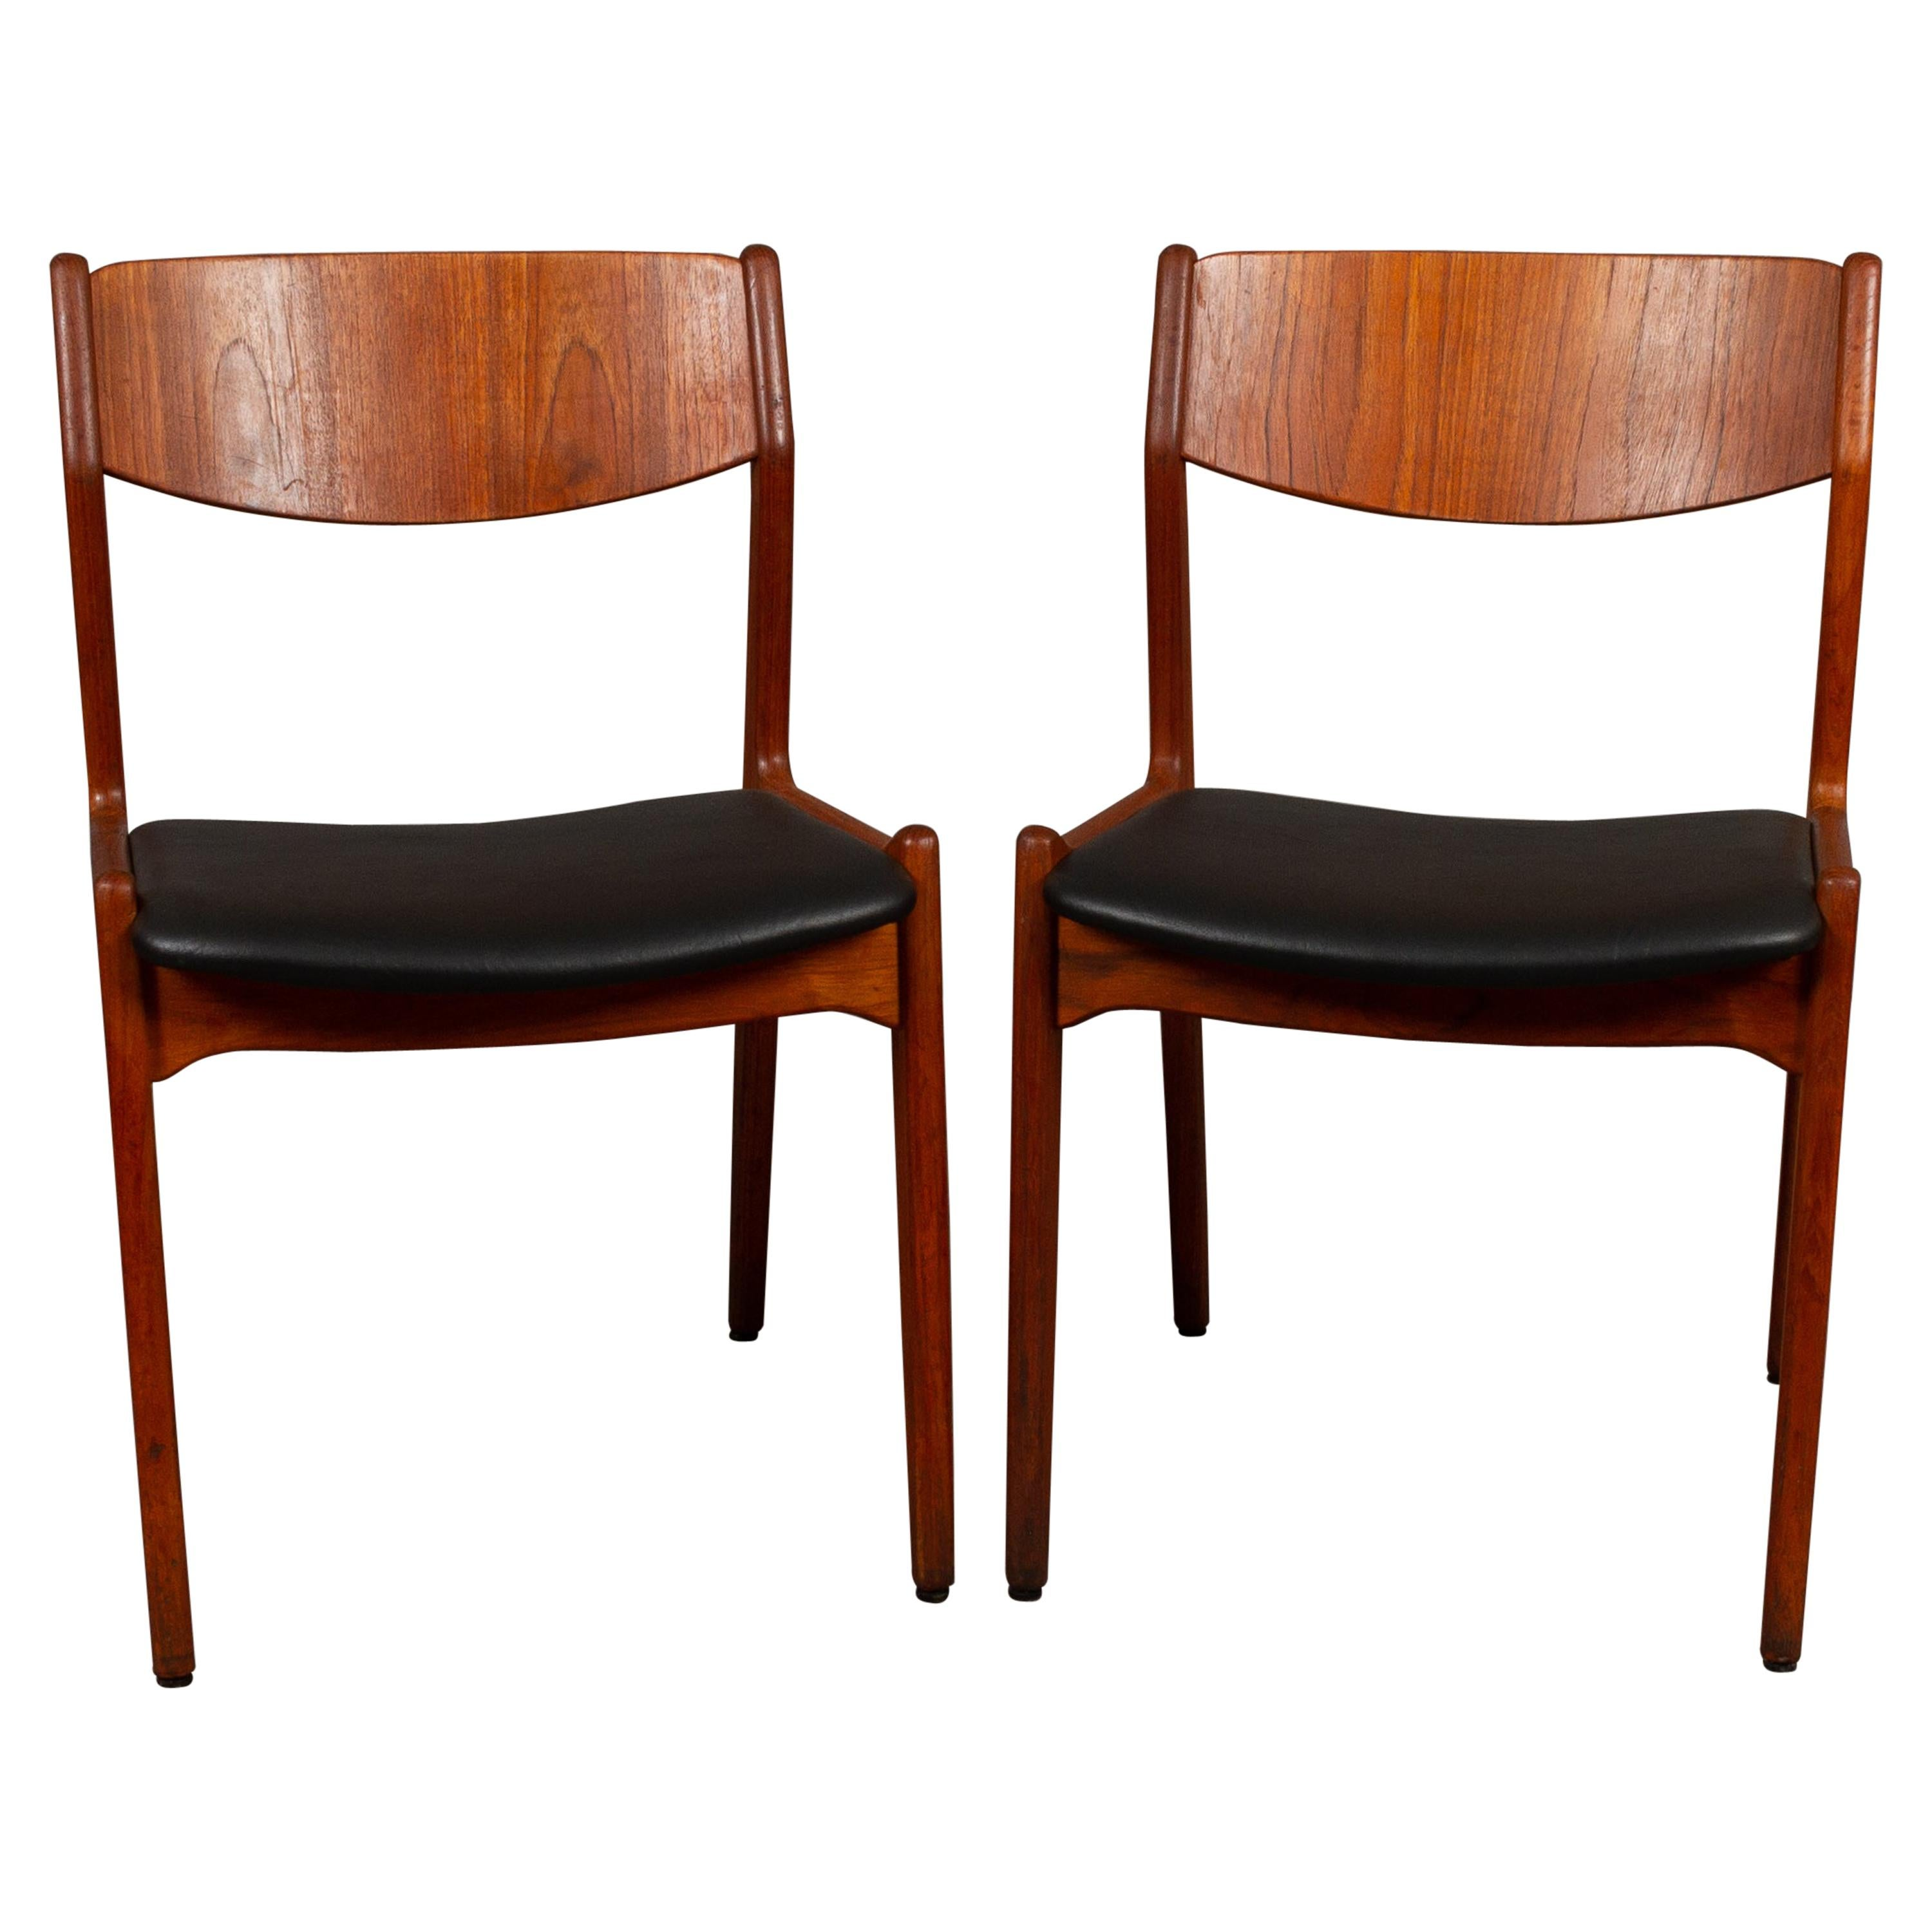 Danish Vintage Teak Dining Chairs, 1960s, Set of 2